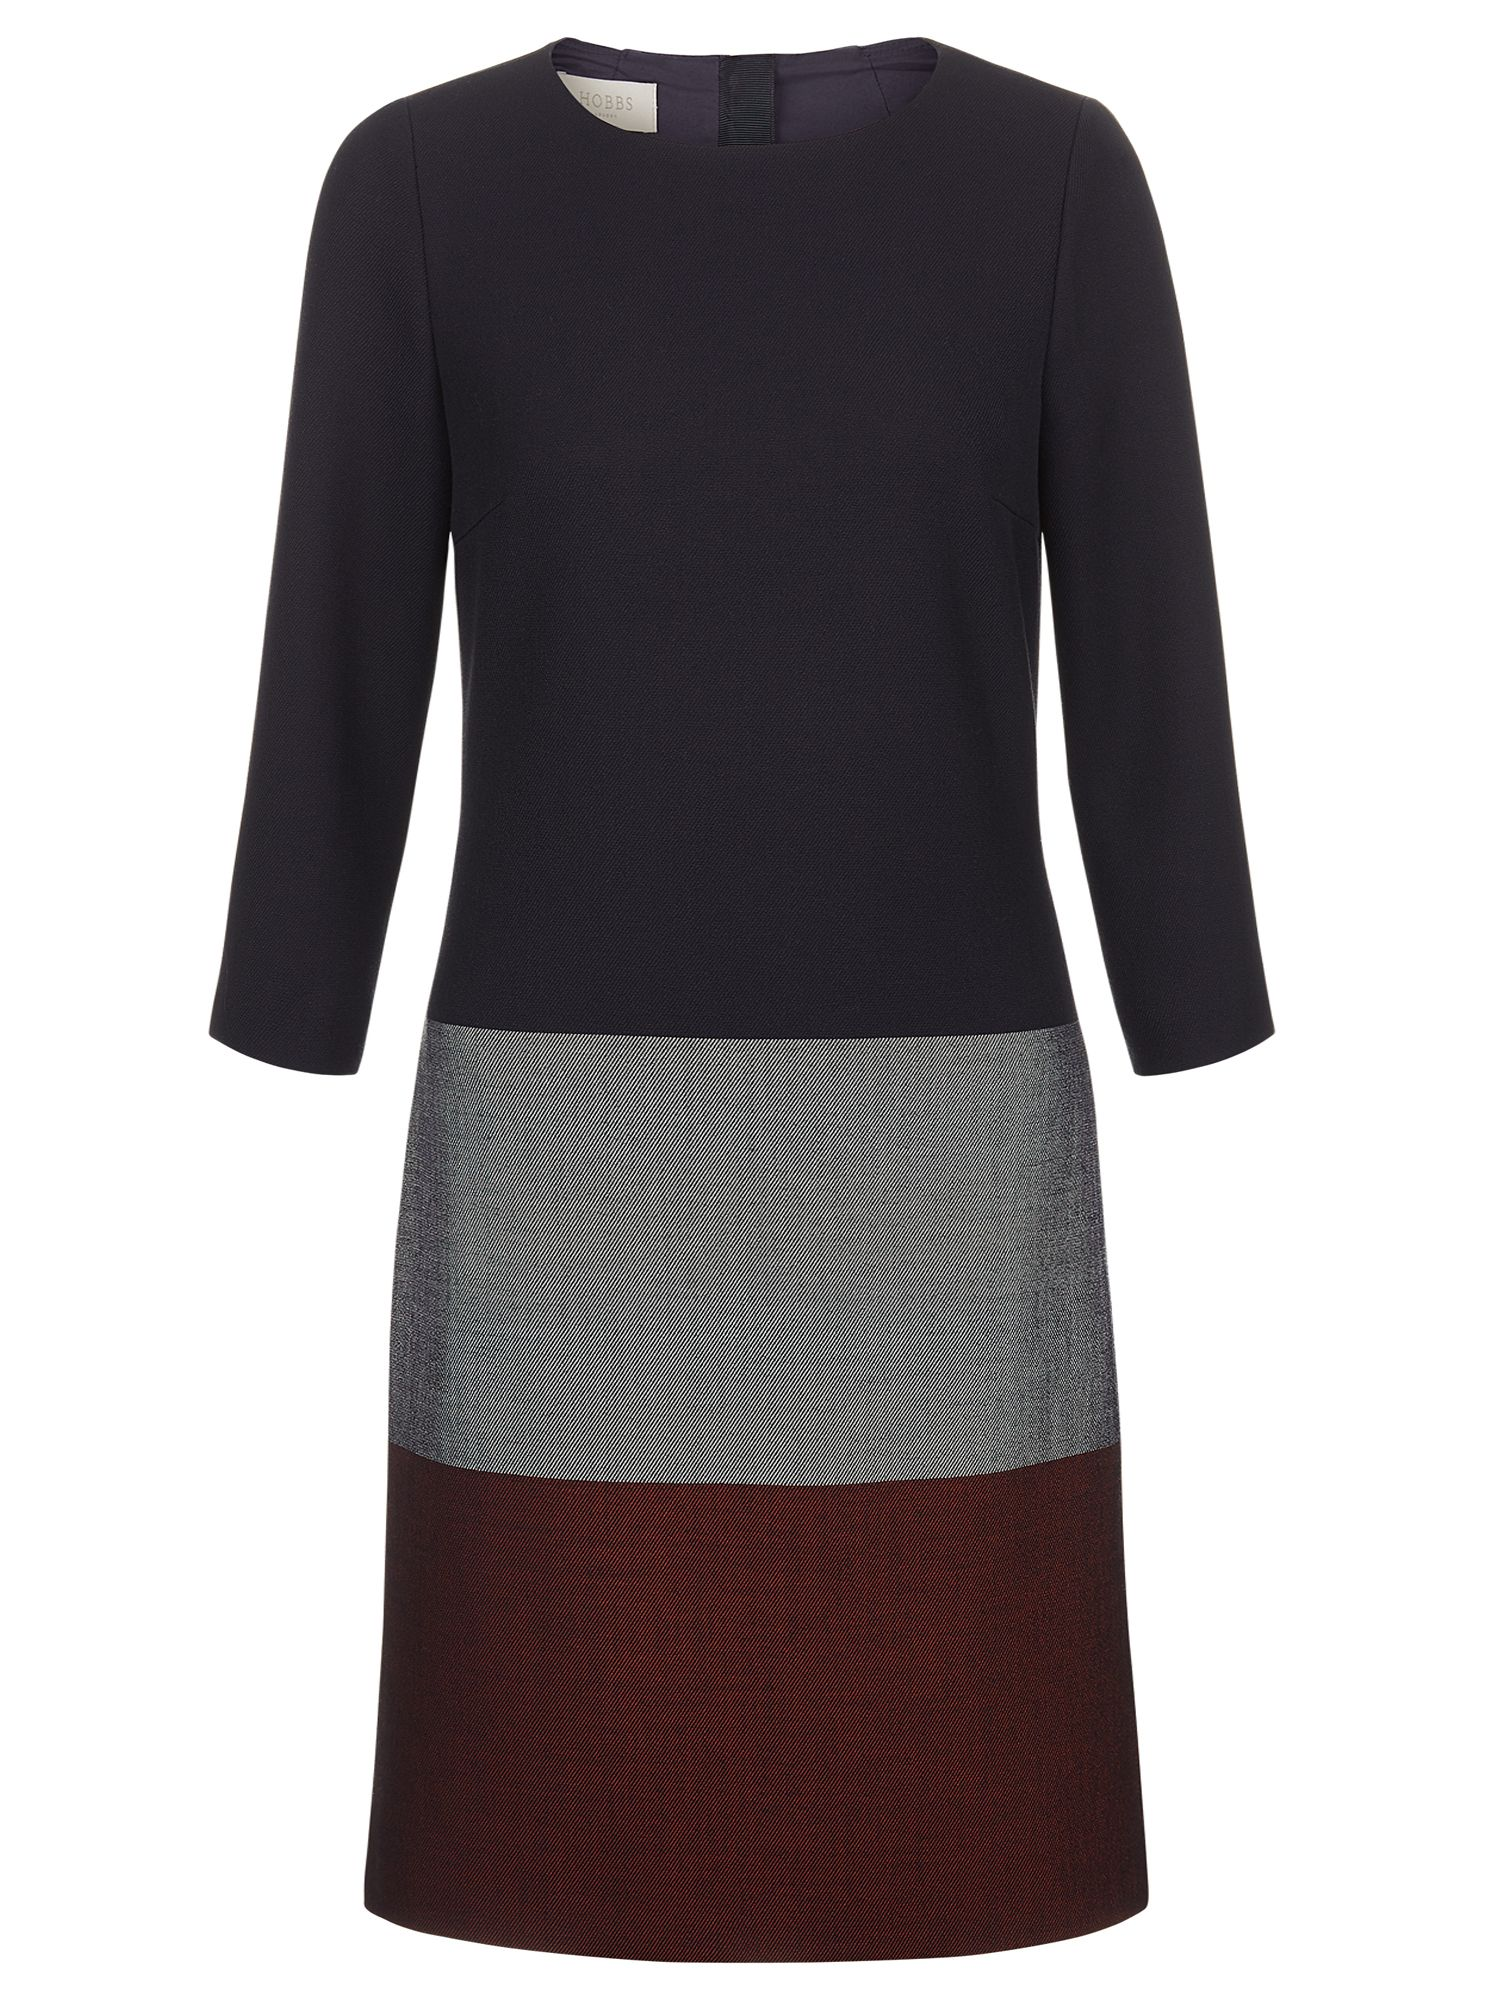 Hobbs Simone Dress, Multi-Coloured